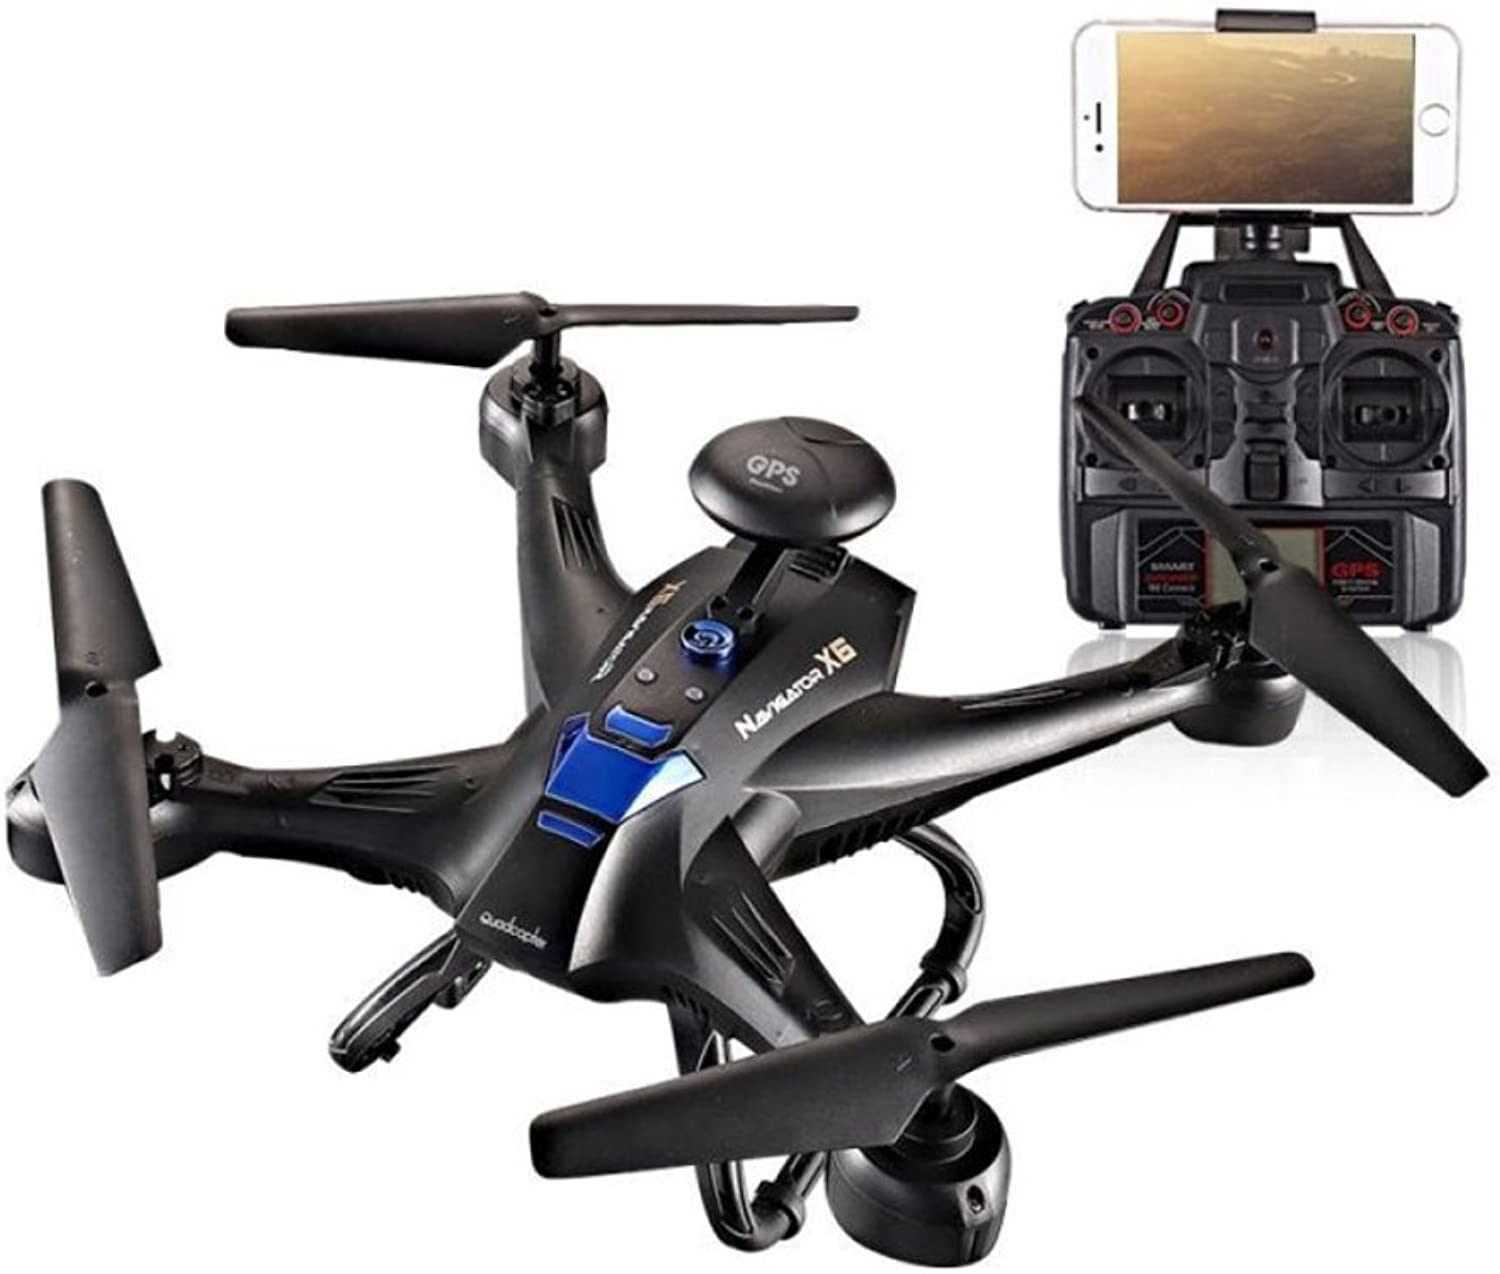 KYOKIM Remote And Mobile Phone APP Control Drone Synchronous Transmission Aerial Photography,323212cm Flight Time 15 Minutes And Remote Control Distance 350 Meters